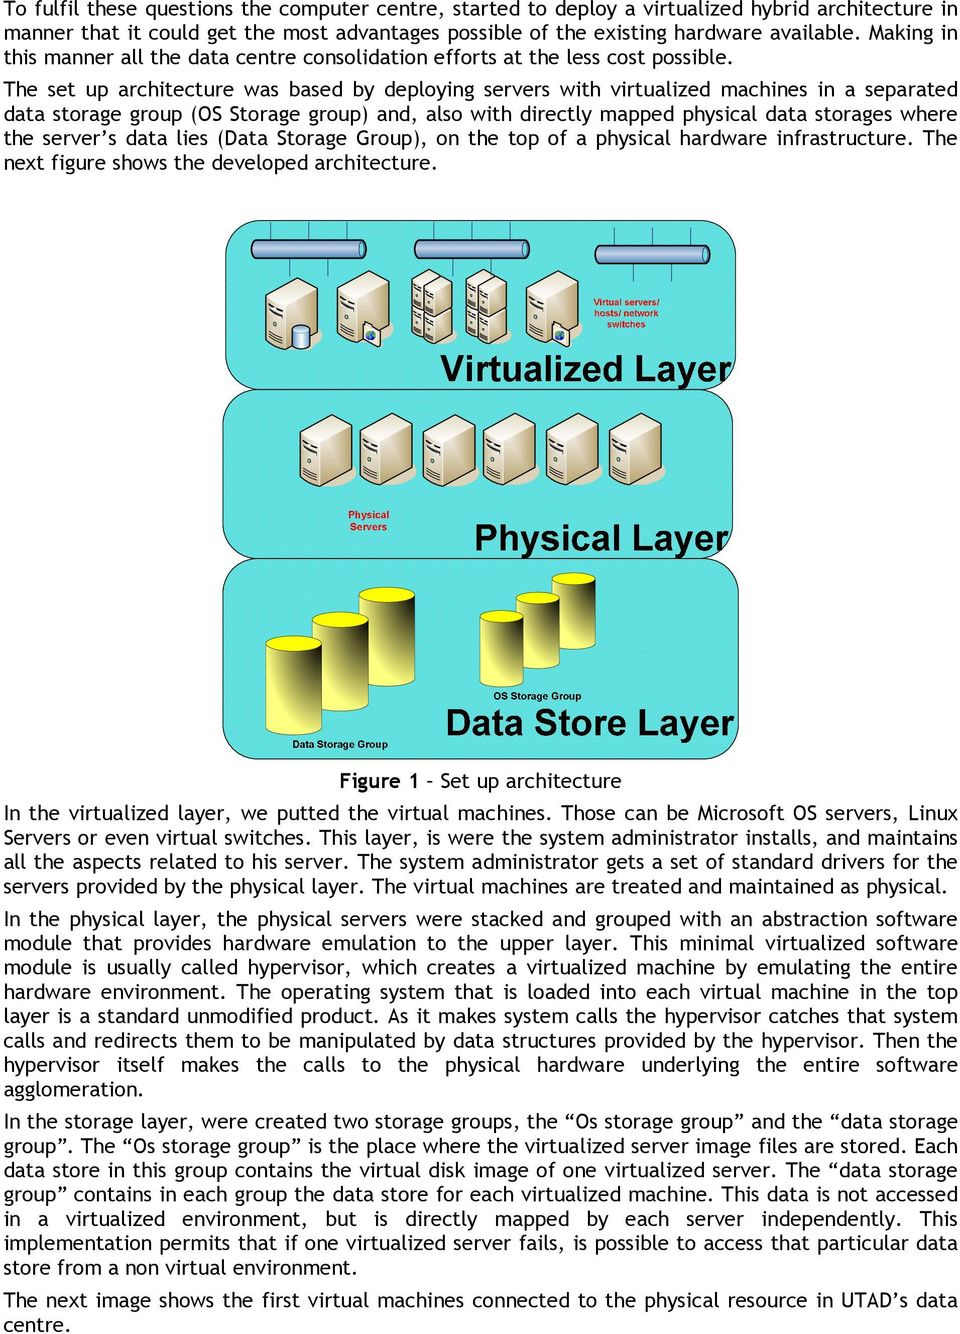 The set up architecture was based by deploying servers with virtualized machines in a separated data storage group (OS Storage group) and, also with directly mapped physical data storages where the